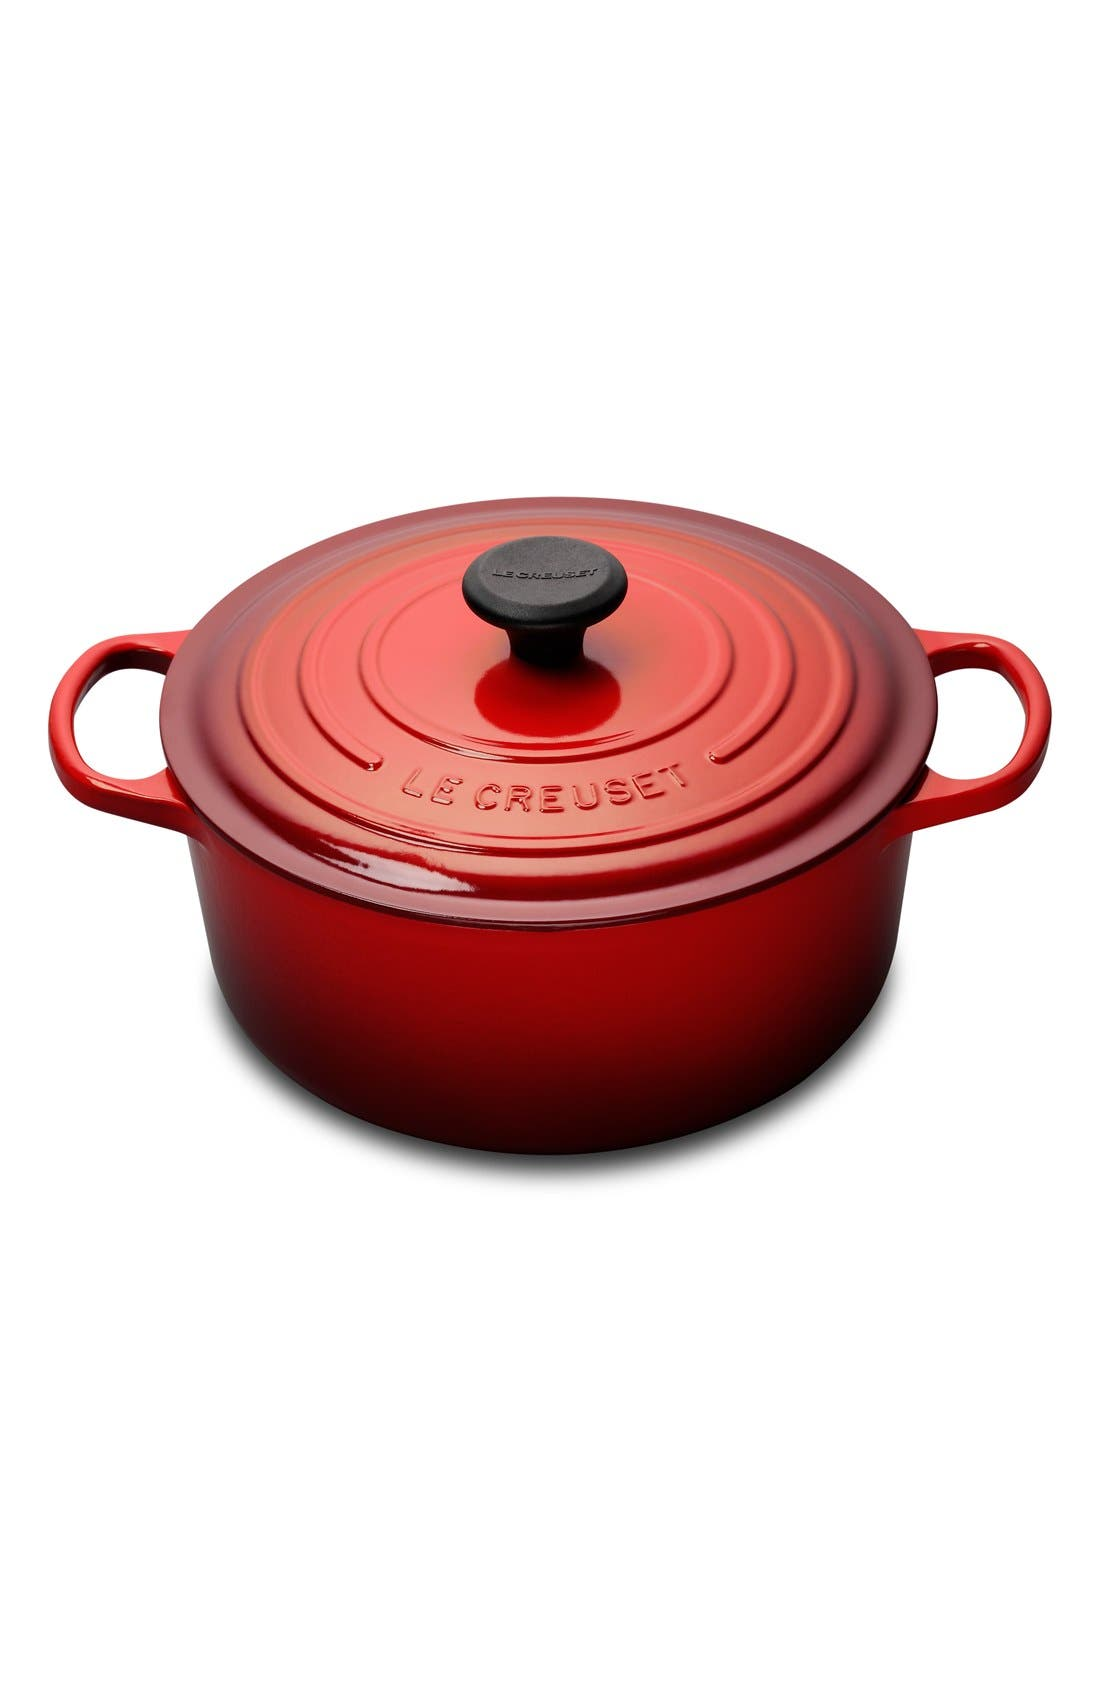 Main Image - Le Creuset Signature 5 1/2 Quart Round Enamel Cast Iron French/Dutch Oven